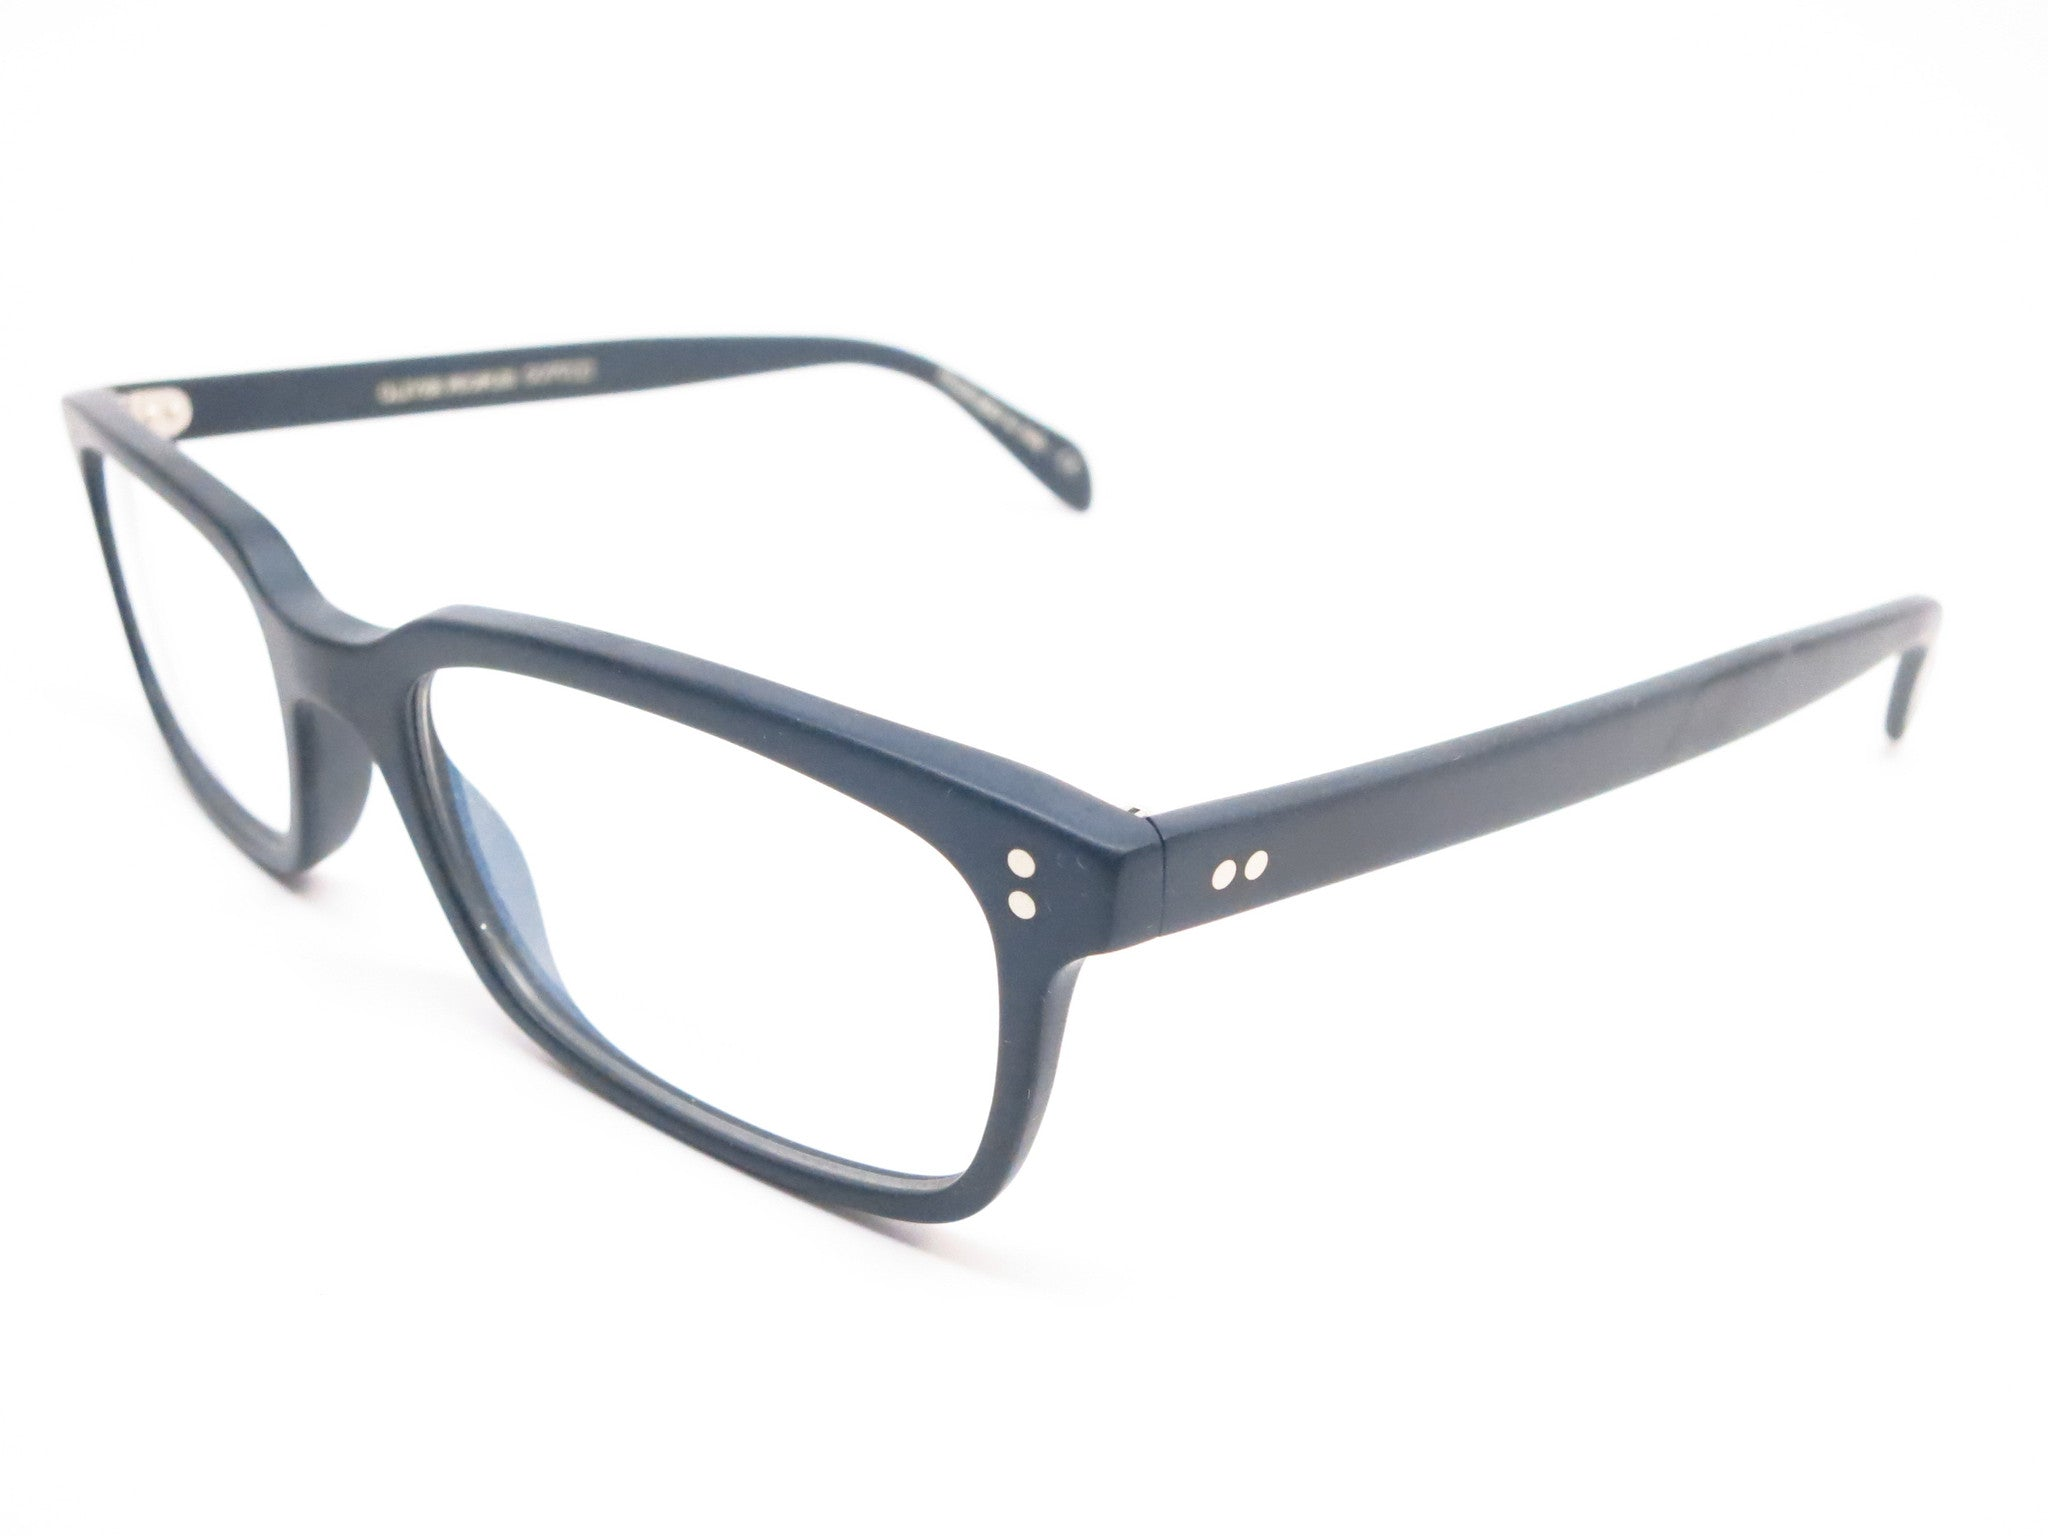 9ff04ab6a0 Oliver Peoples Denison OV 5102 1031 Matte Black Eyeglasses - Eye Heart  Shades - Oliver Peoples